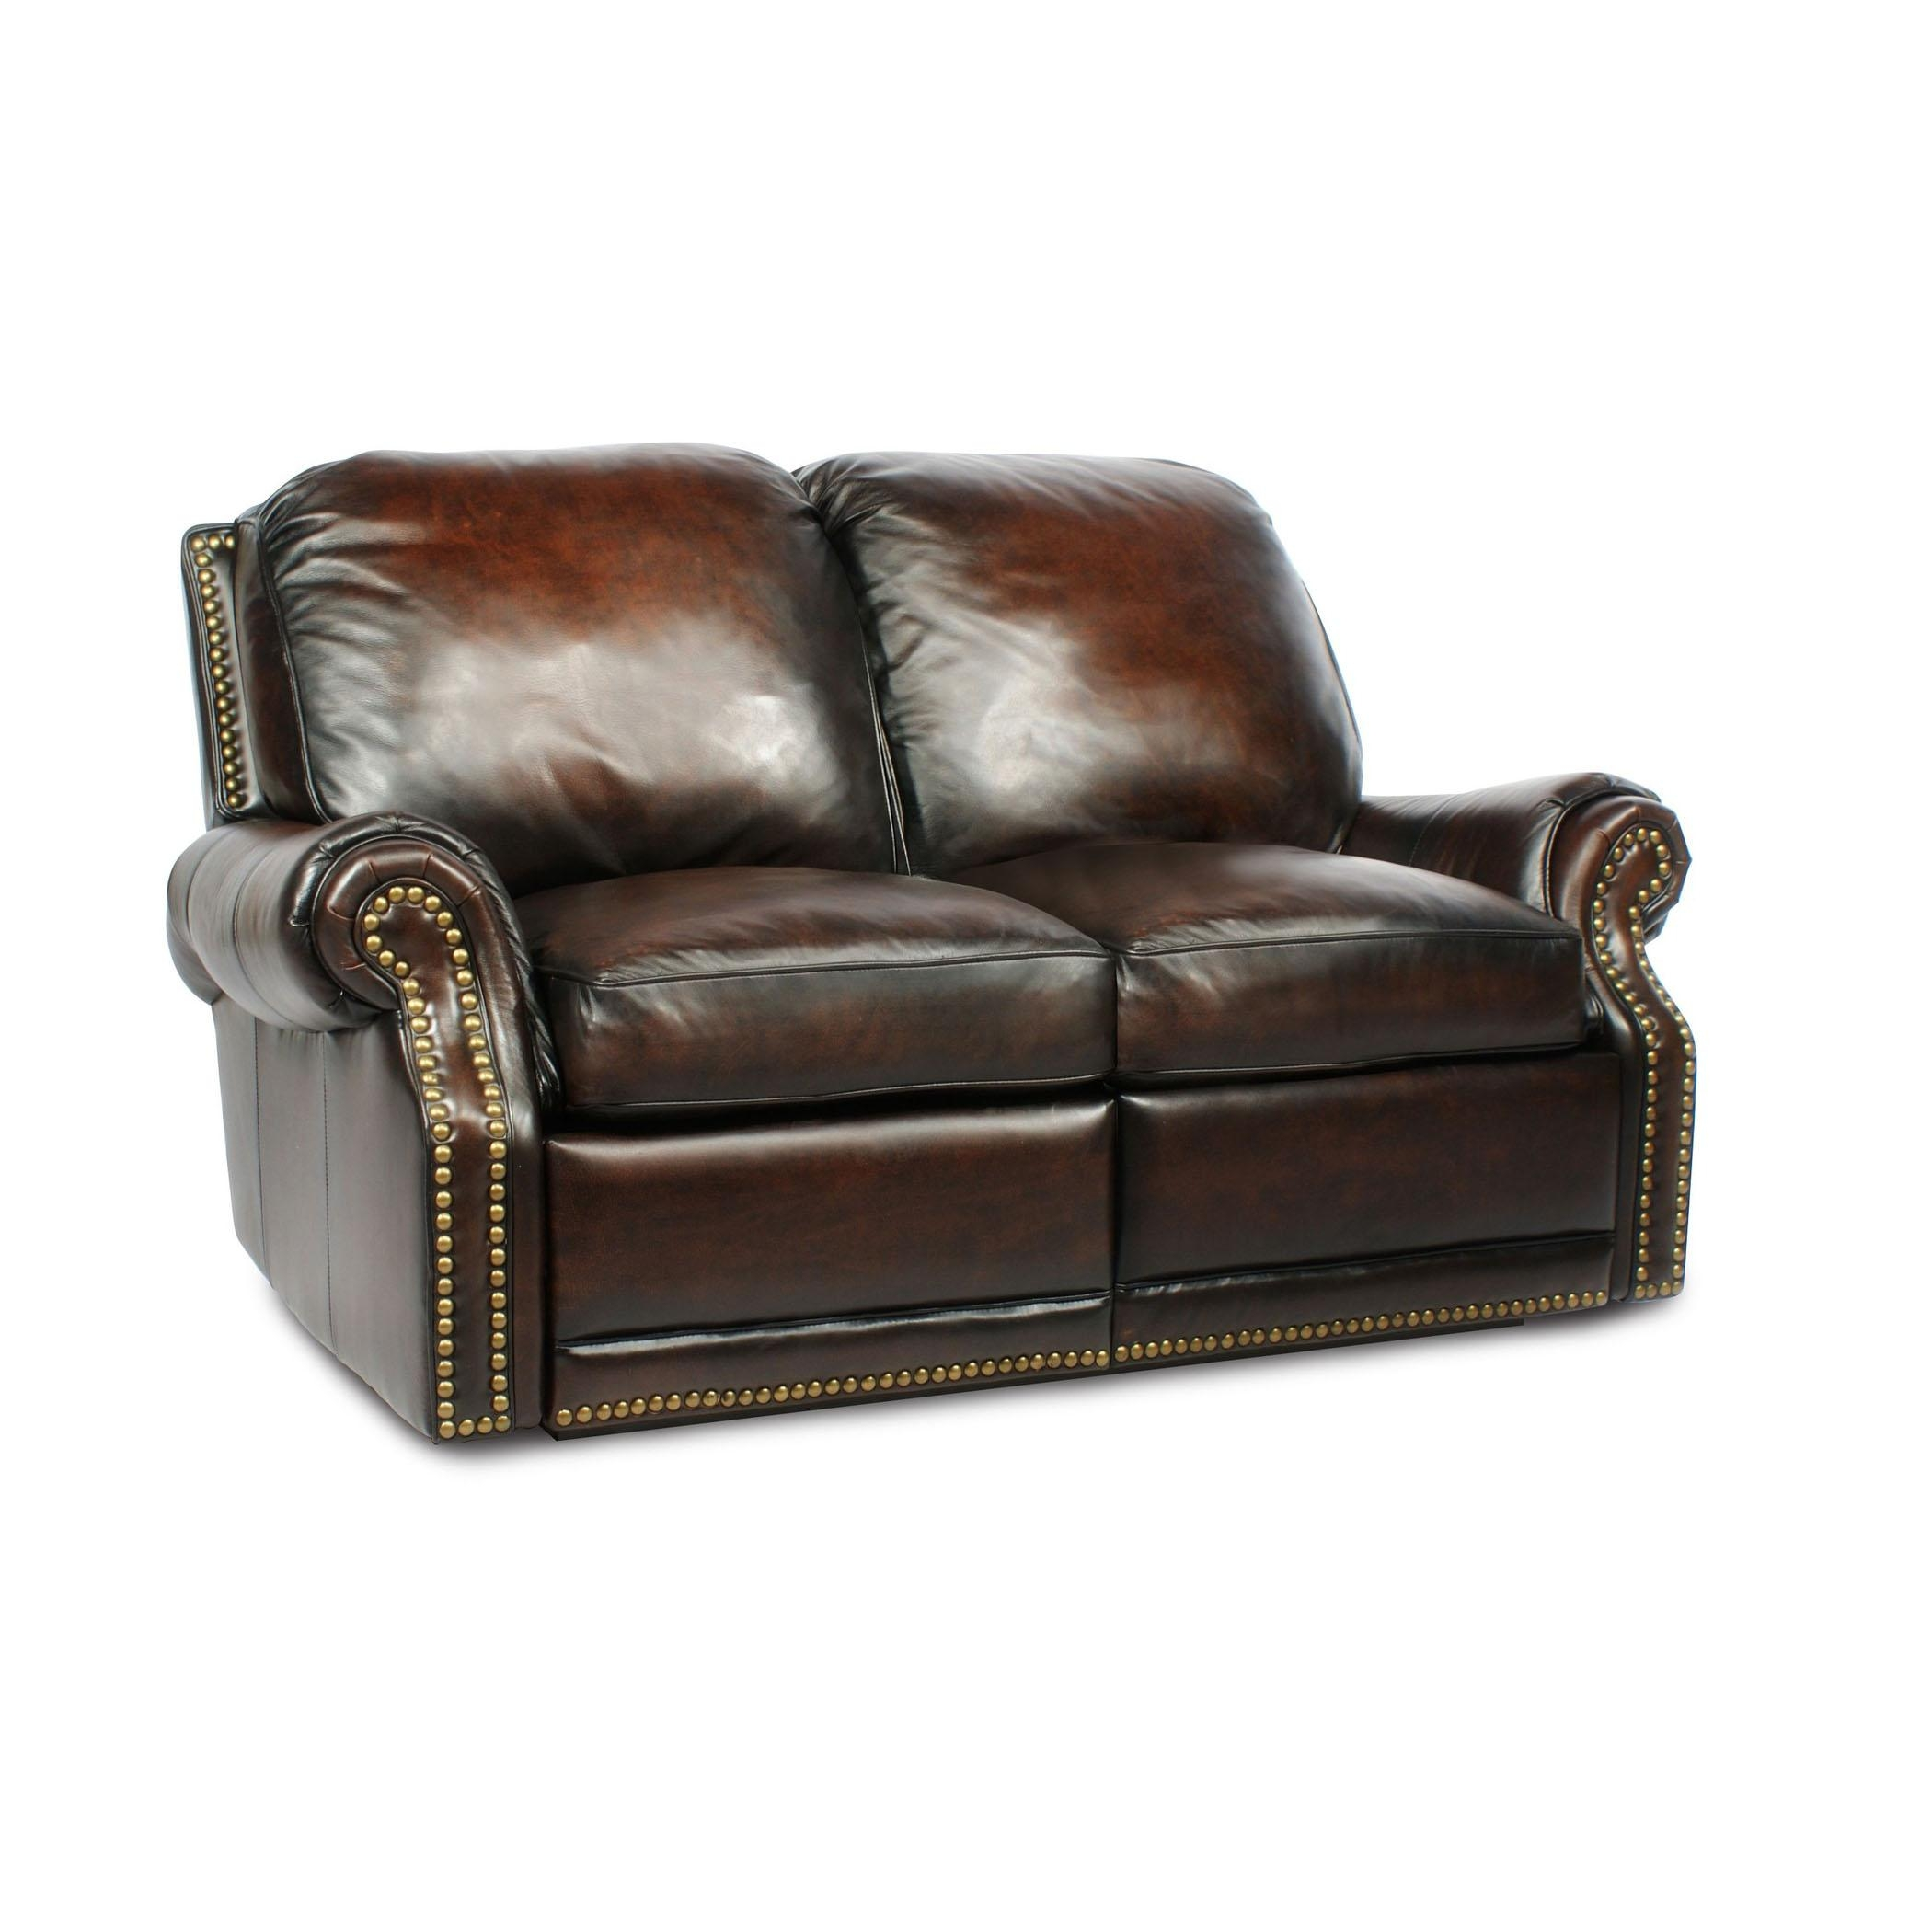 Barcalounger Premier Ii Leather 2 Seat Loveseat Sofa – Leather 2 For Barcalounger Sofas (Photo 6 of 20)